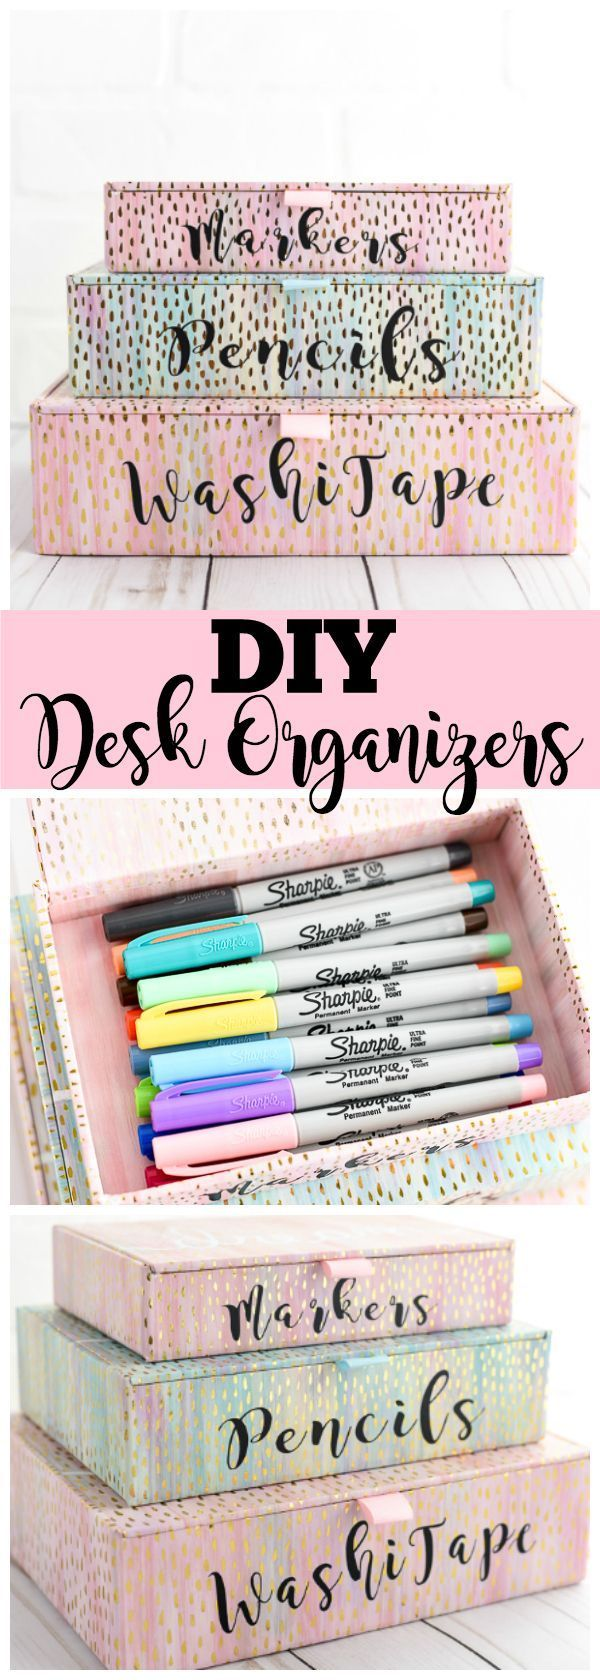 So cute! These 25 genius home organization hacks are easy and life changing!